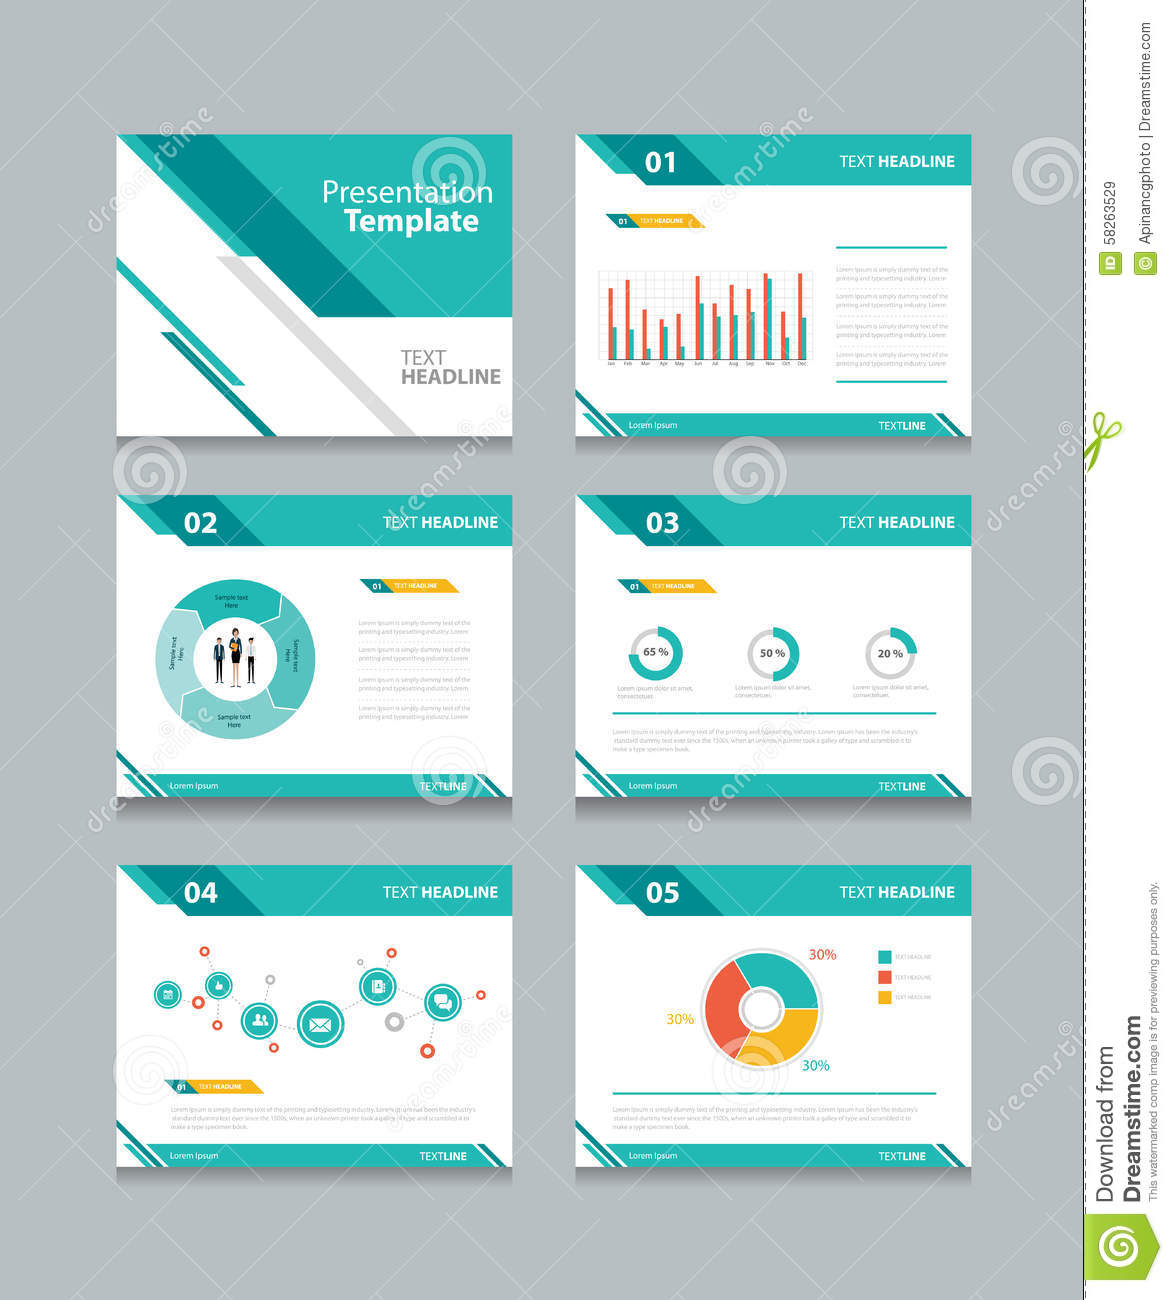 Business presentation template setpowerpoint template design business presentation template setpowerpoint template design backgrounds royalty free vector alramifo Choice Image